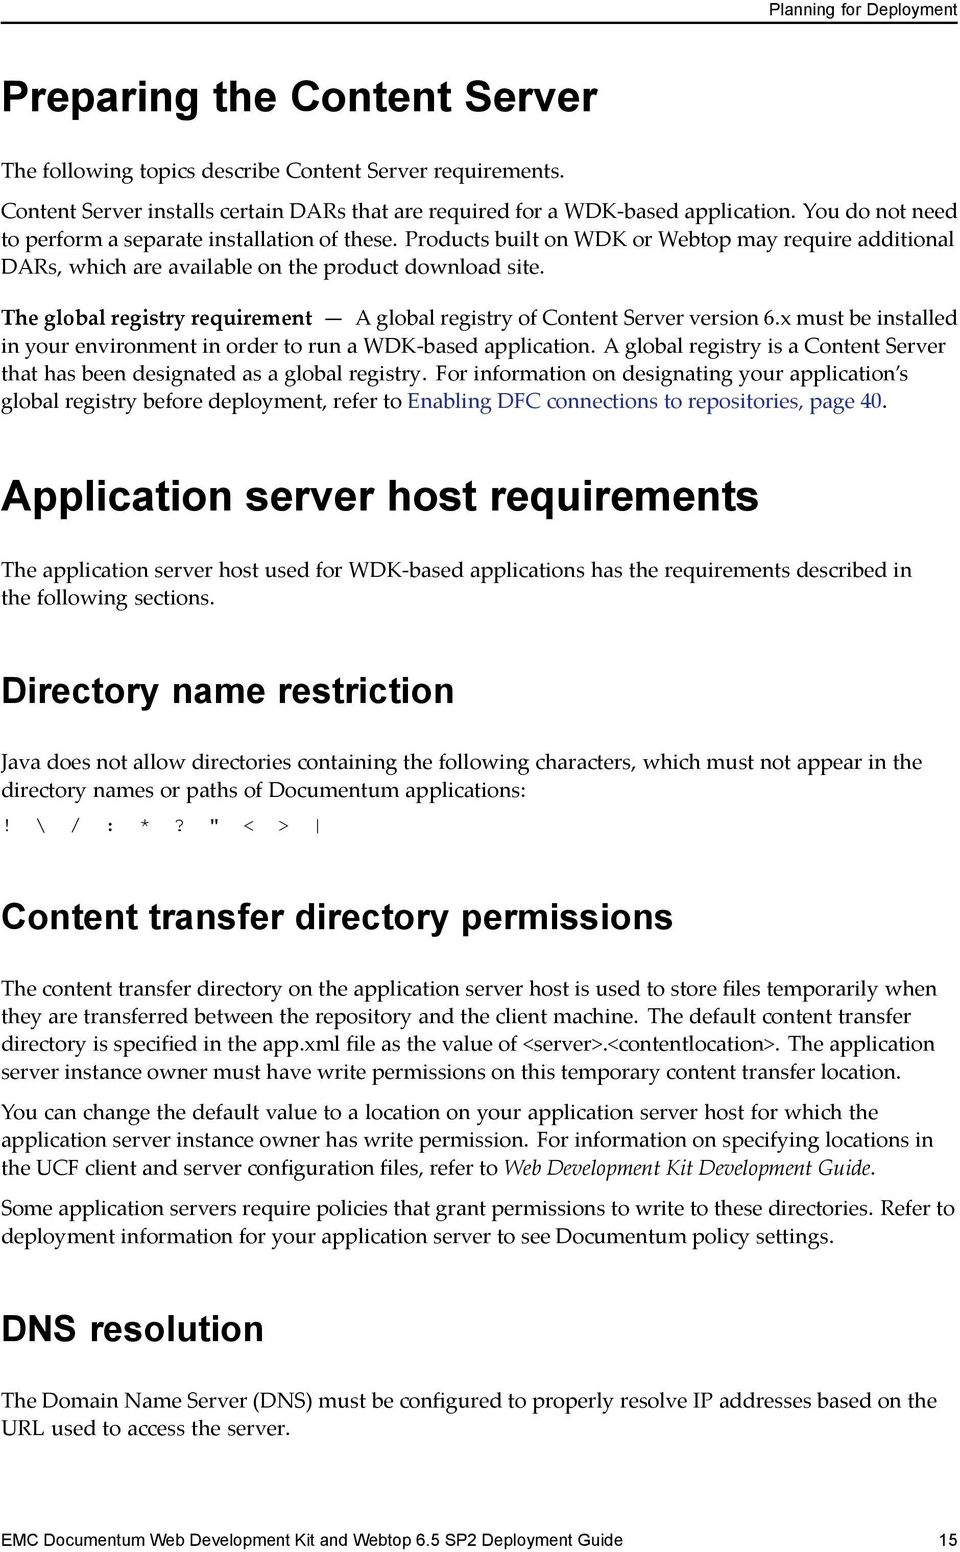 The global registry requirement A global registry of Content Server version 6.x must be installed in your environment in order to run a WDK based application.